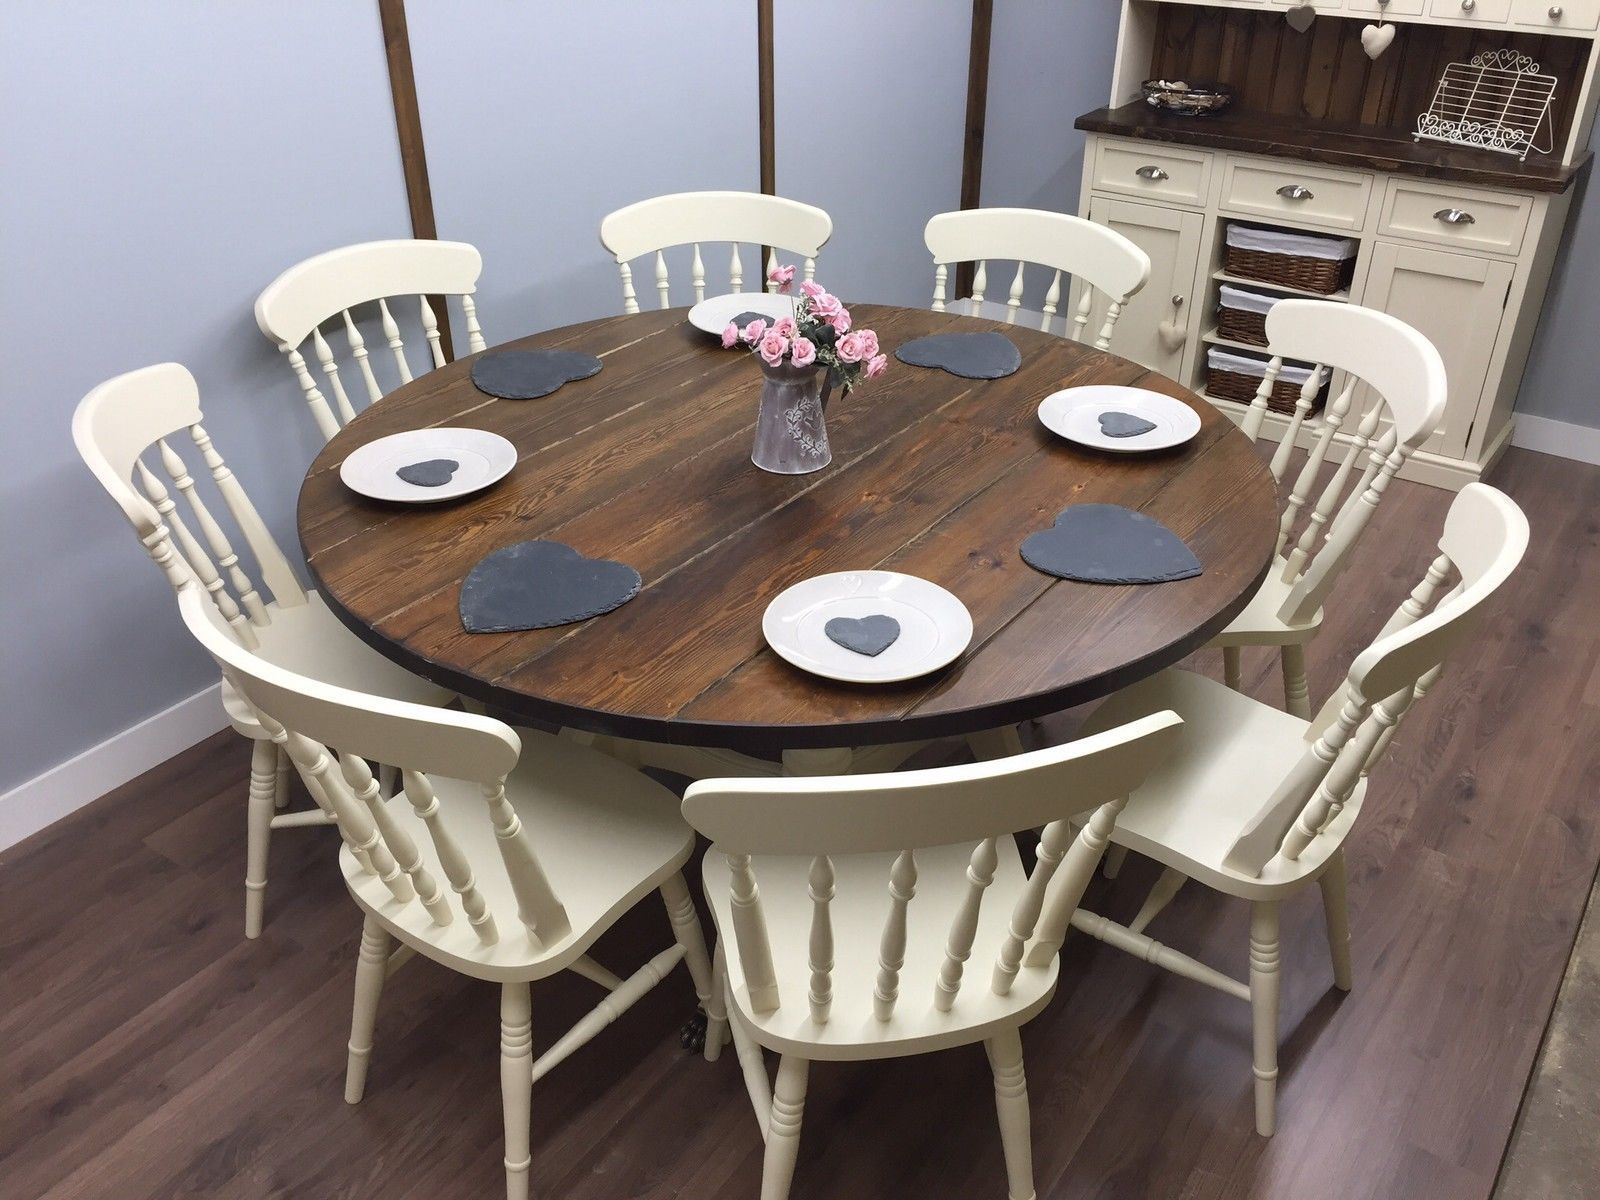 Large Round Farmhouse Table and Chairs 6,8 Seater Shabby Chic DELIVERY  AVAILABLE   eBay